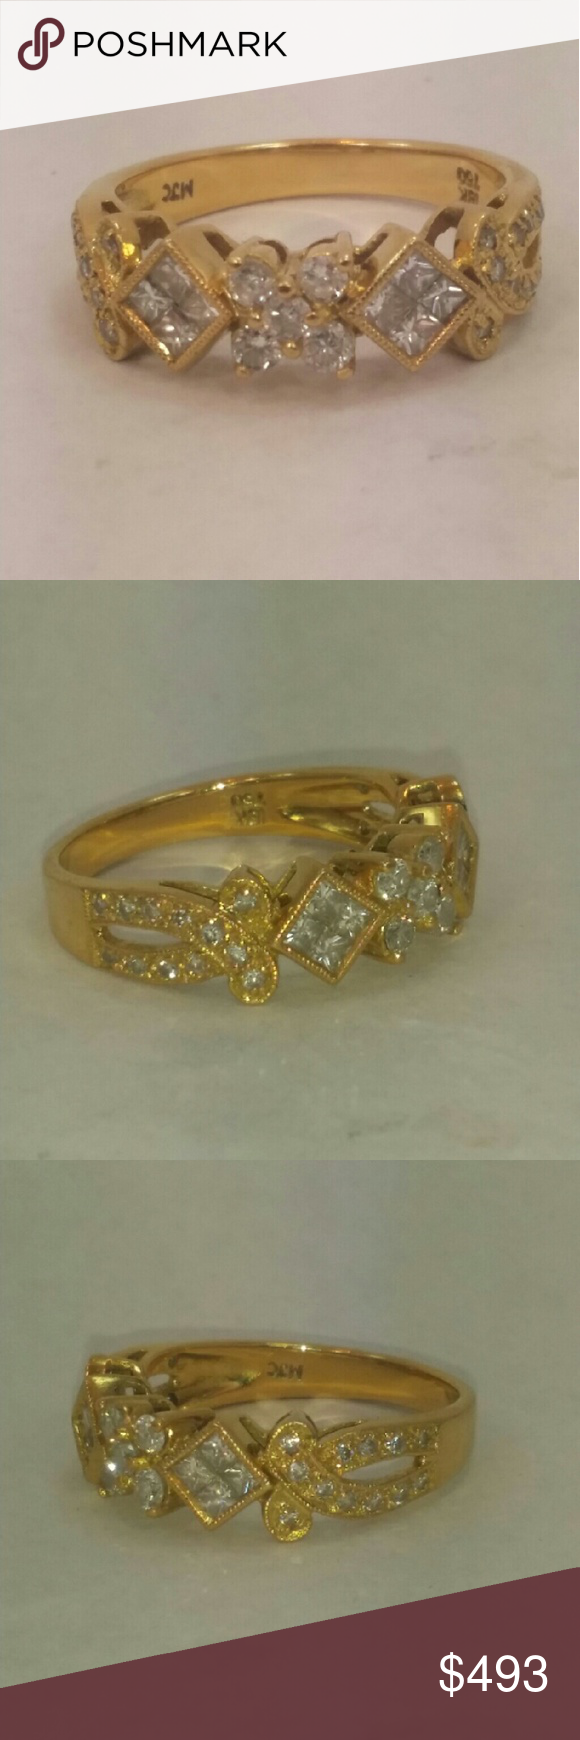 18k solid gold diamond ring 18k solid gold, stamped 750 18k Genuine diamonds 0.83ct total weight 4.3 grams Size 6.75 Jewelry Rings